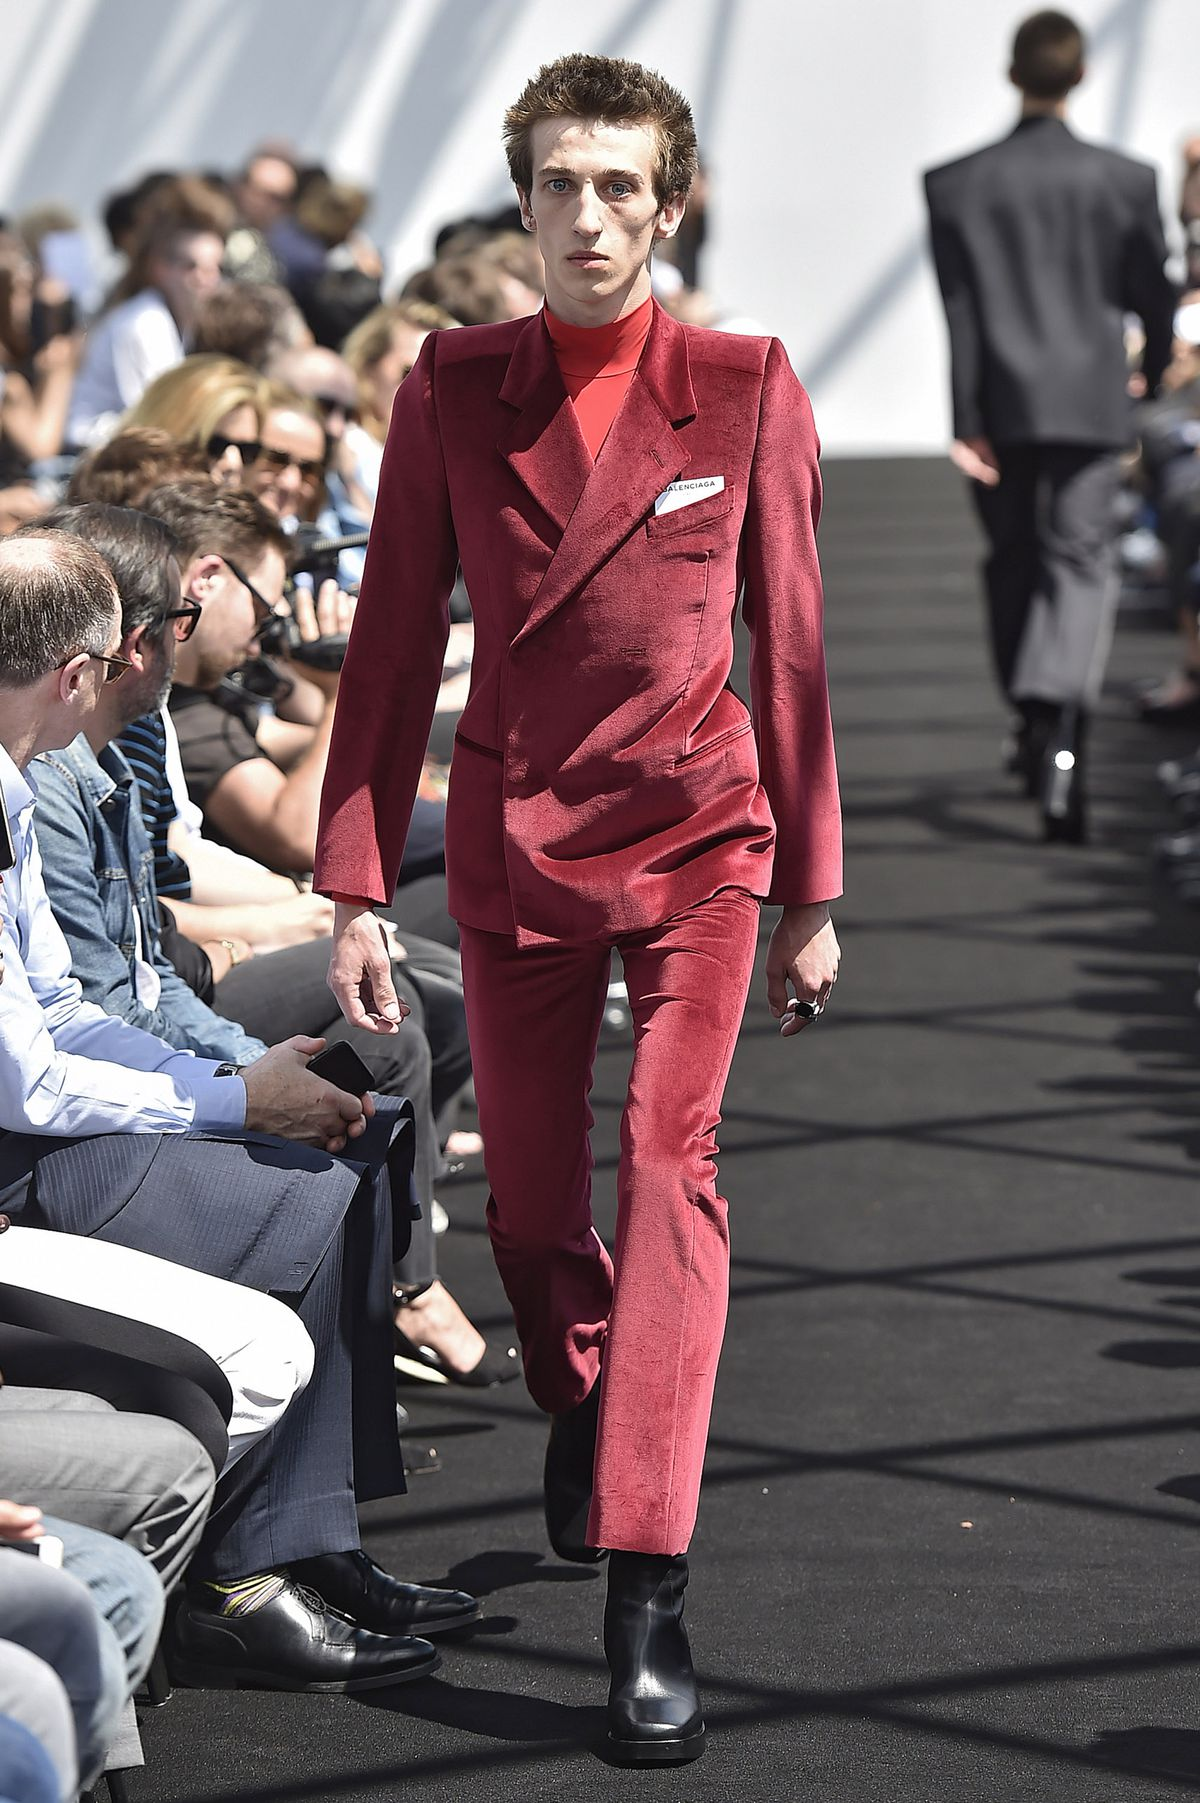 A model walks the runway wearing a pinched red velvet jacket and pants.